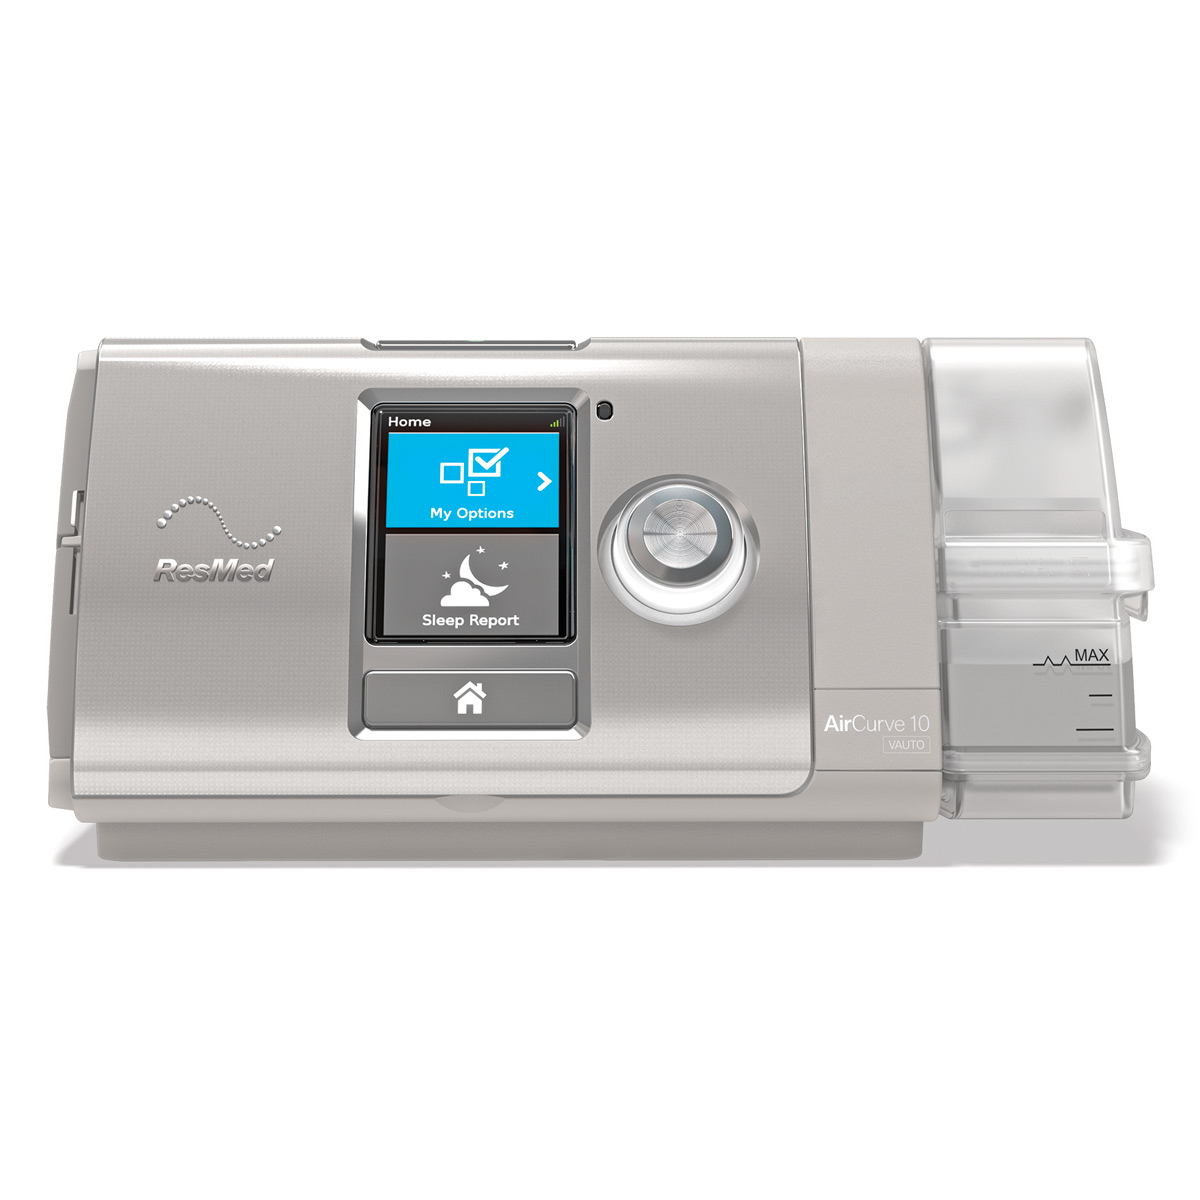 resmed-aircurve-10-vauto-bilevel-sleep-therapy-device_2